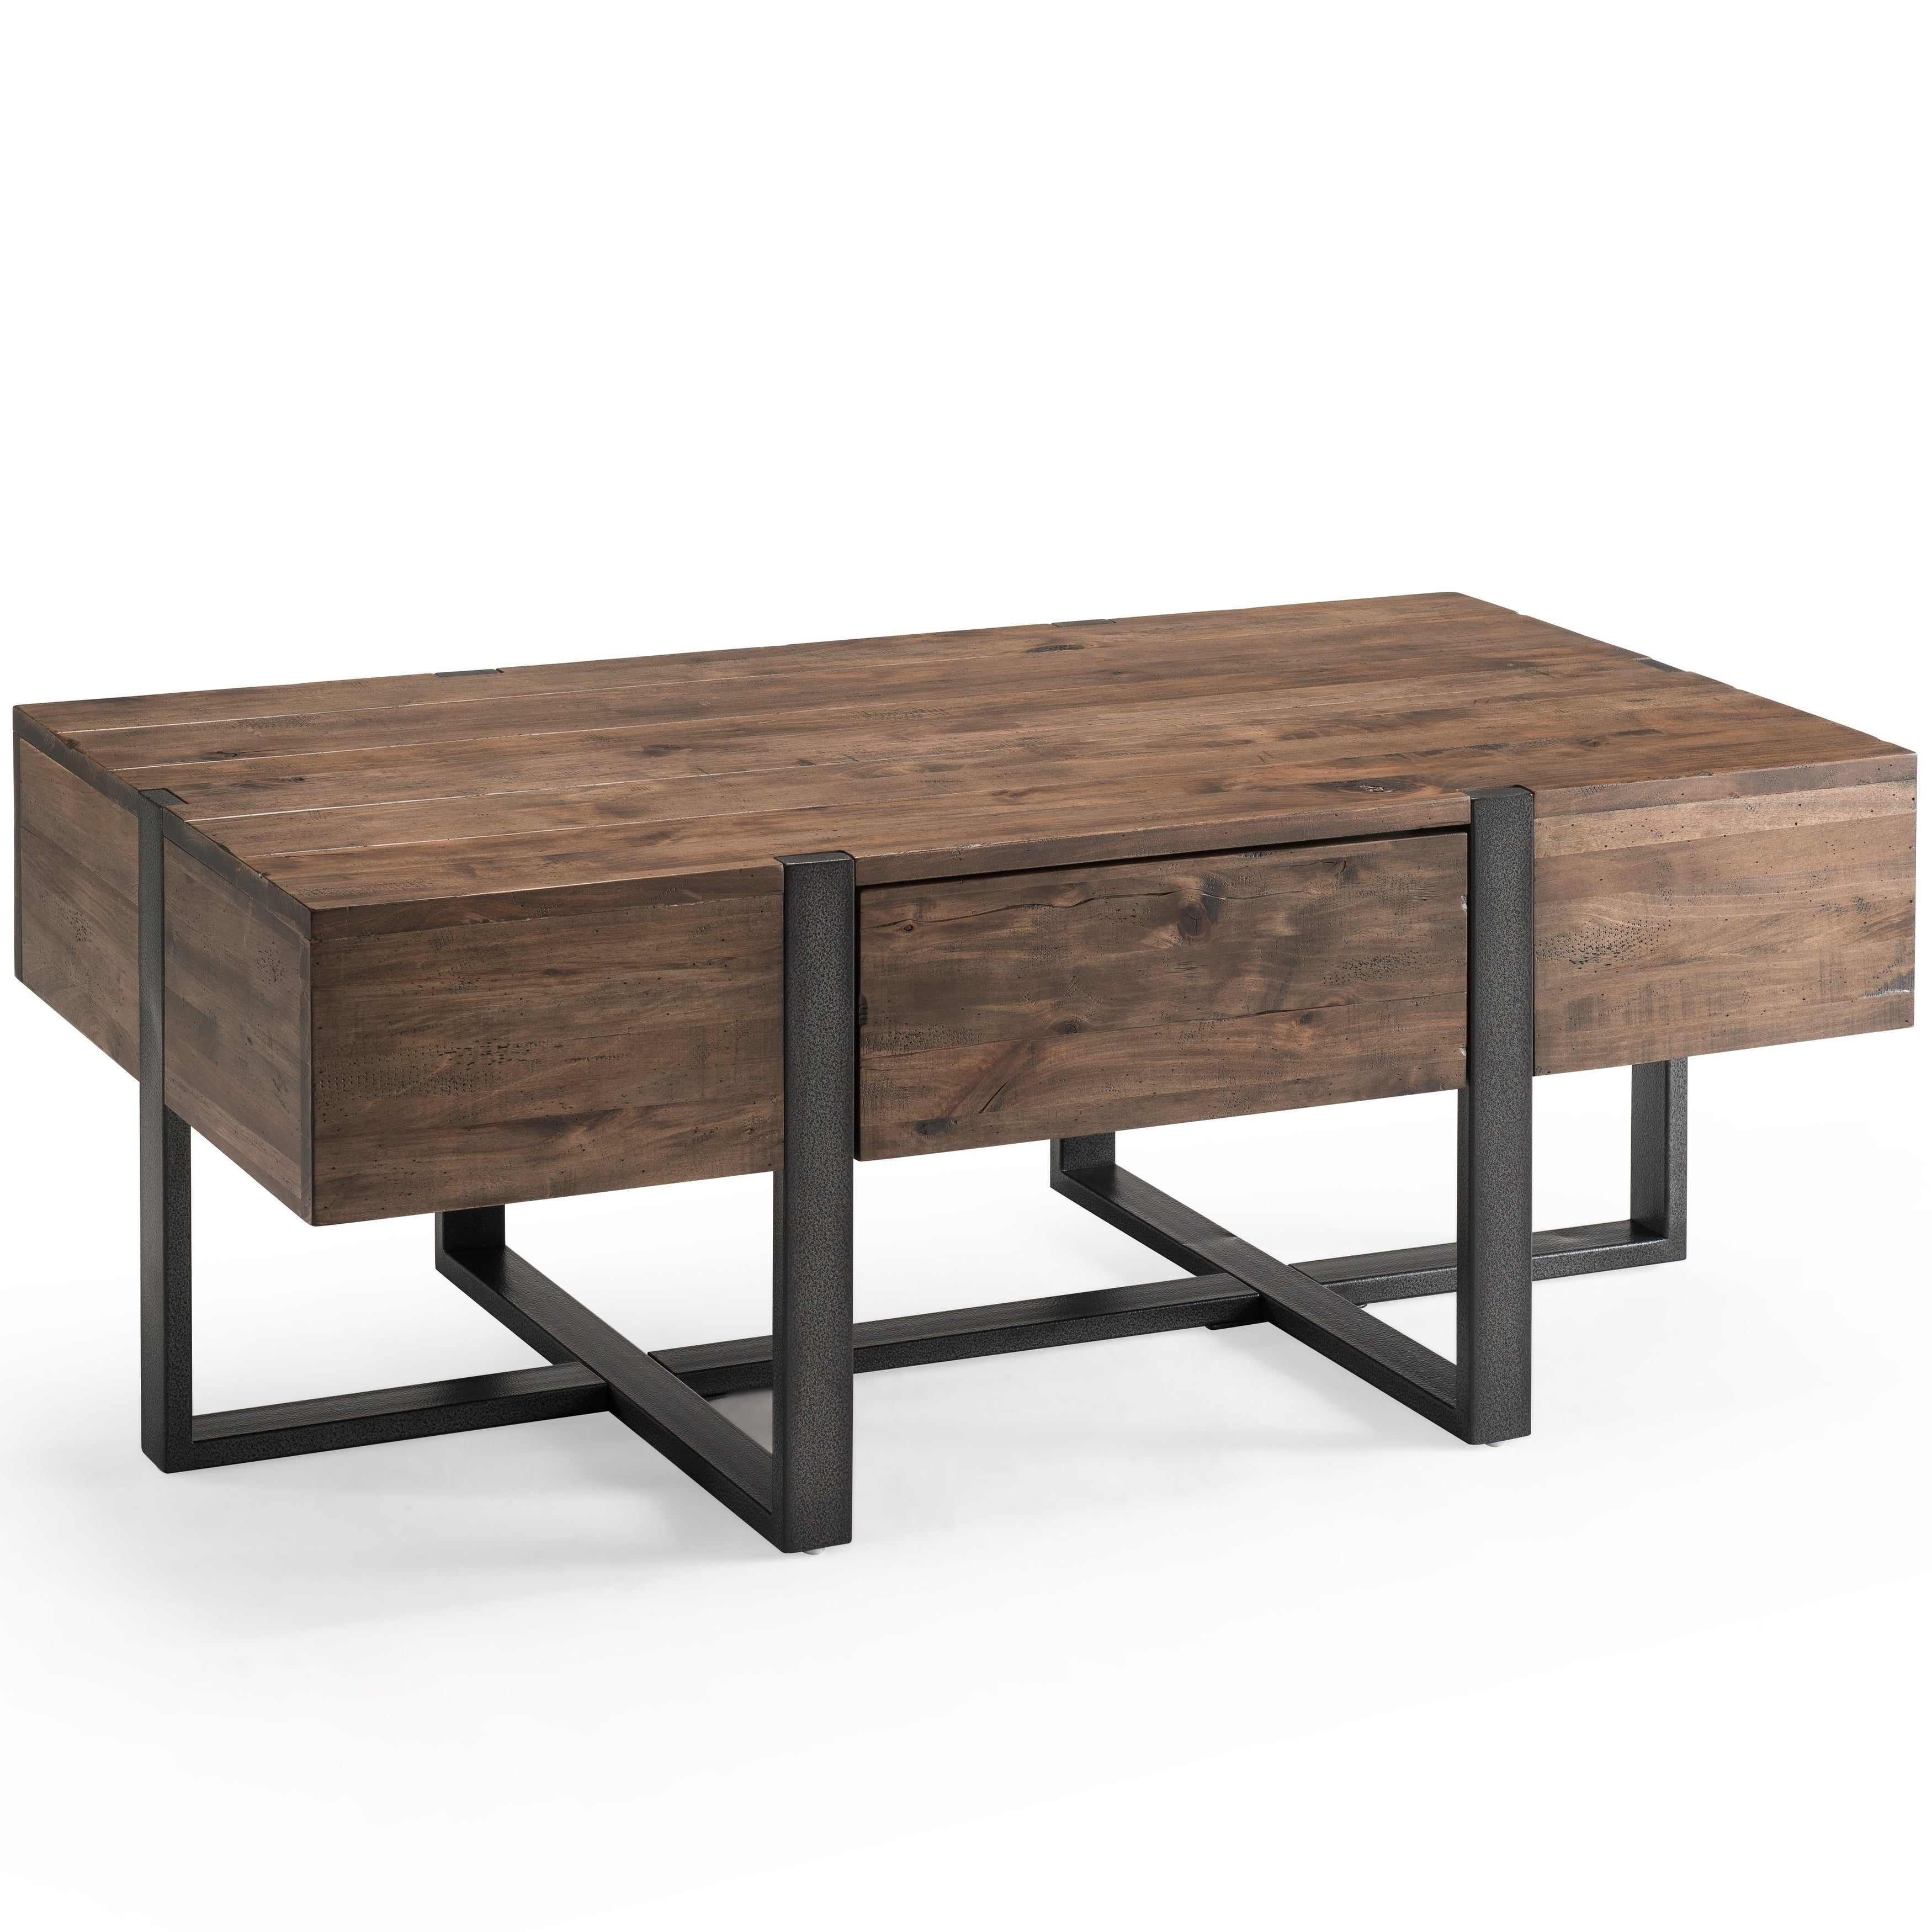 Shop Prescott Modern Reclaimed Wood Condo Coffee Table - On Sale - Free  Shipping Today - Overstock - 16939913